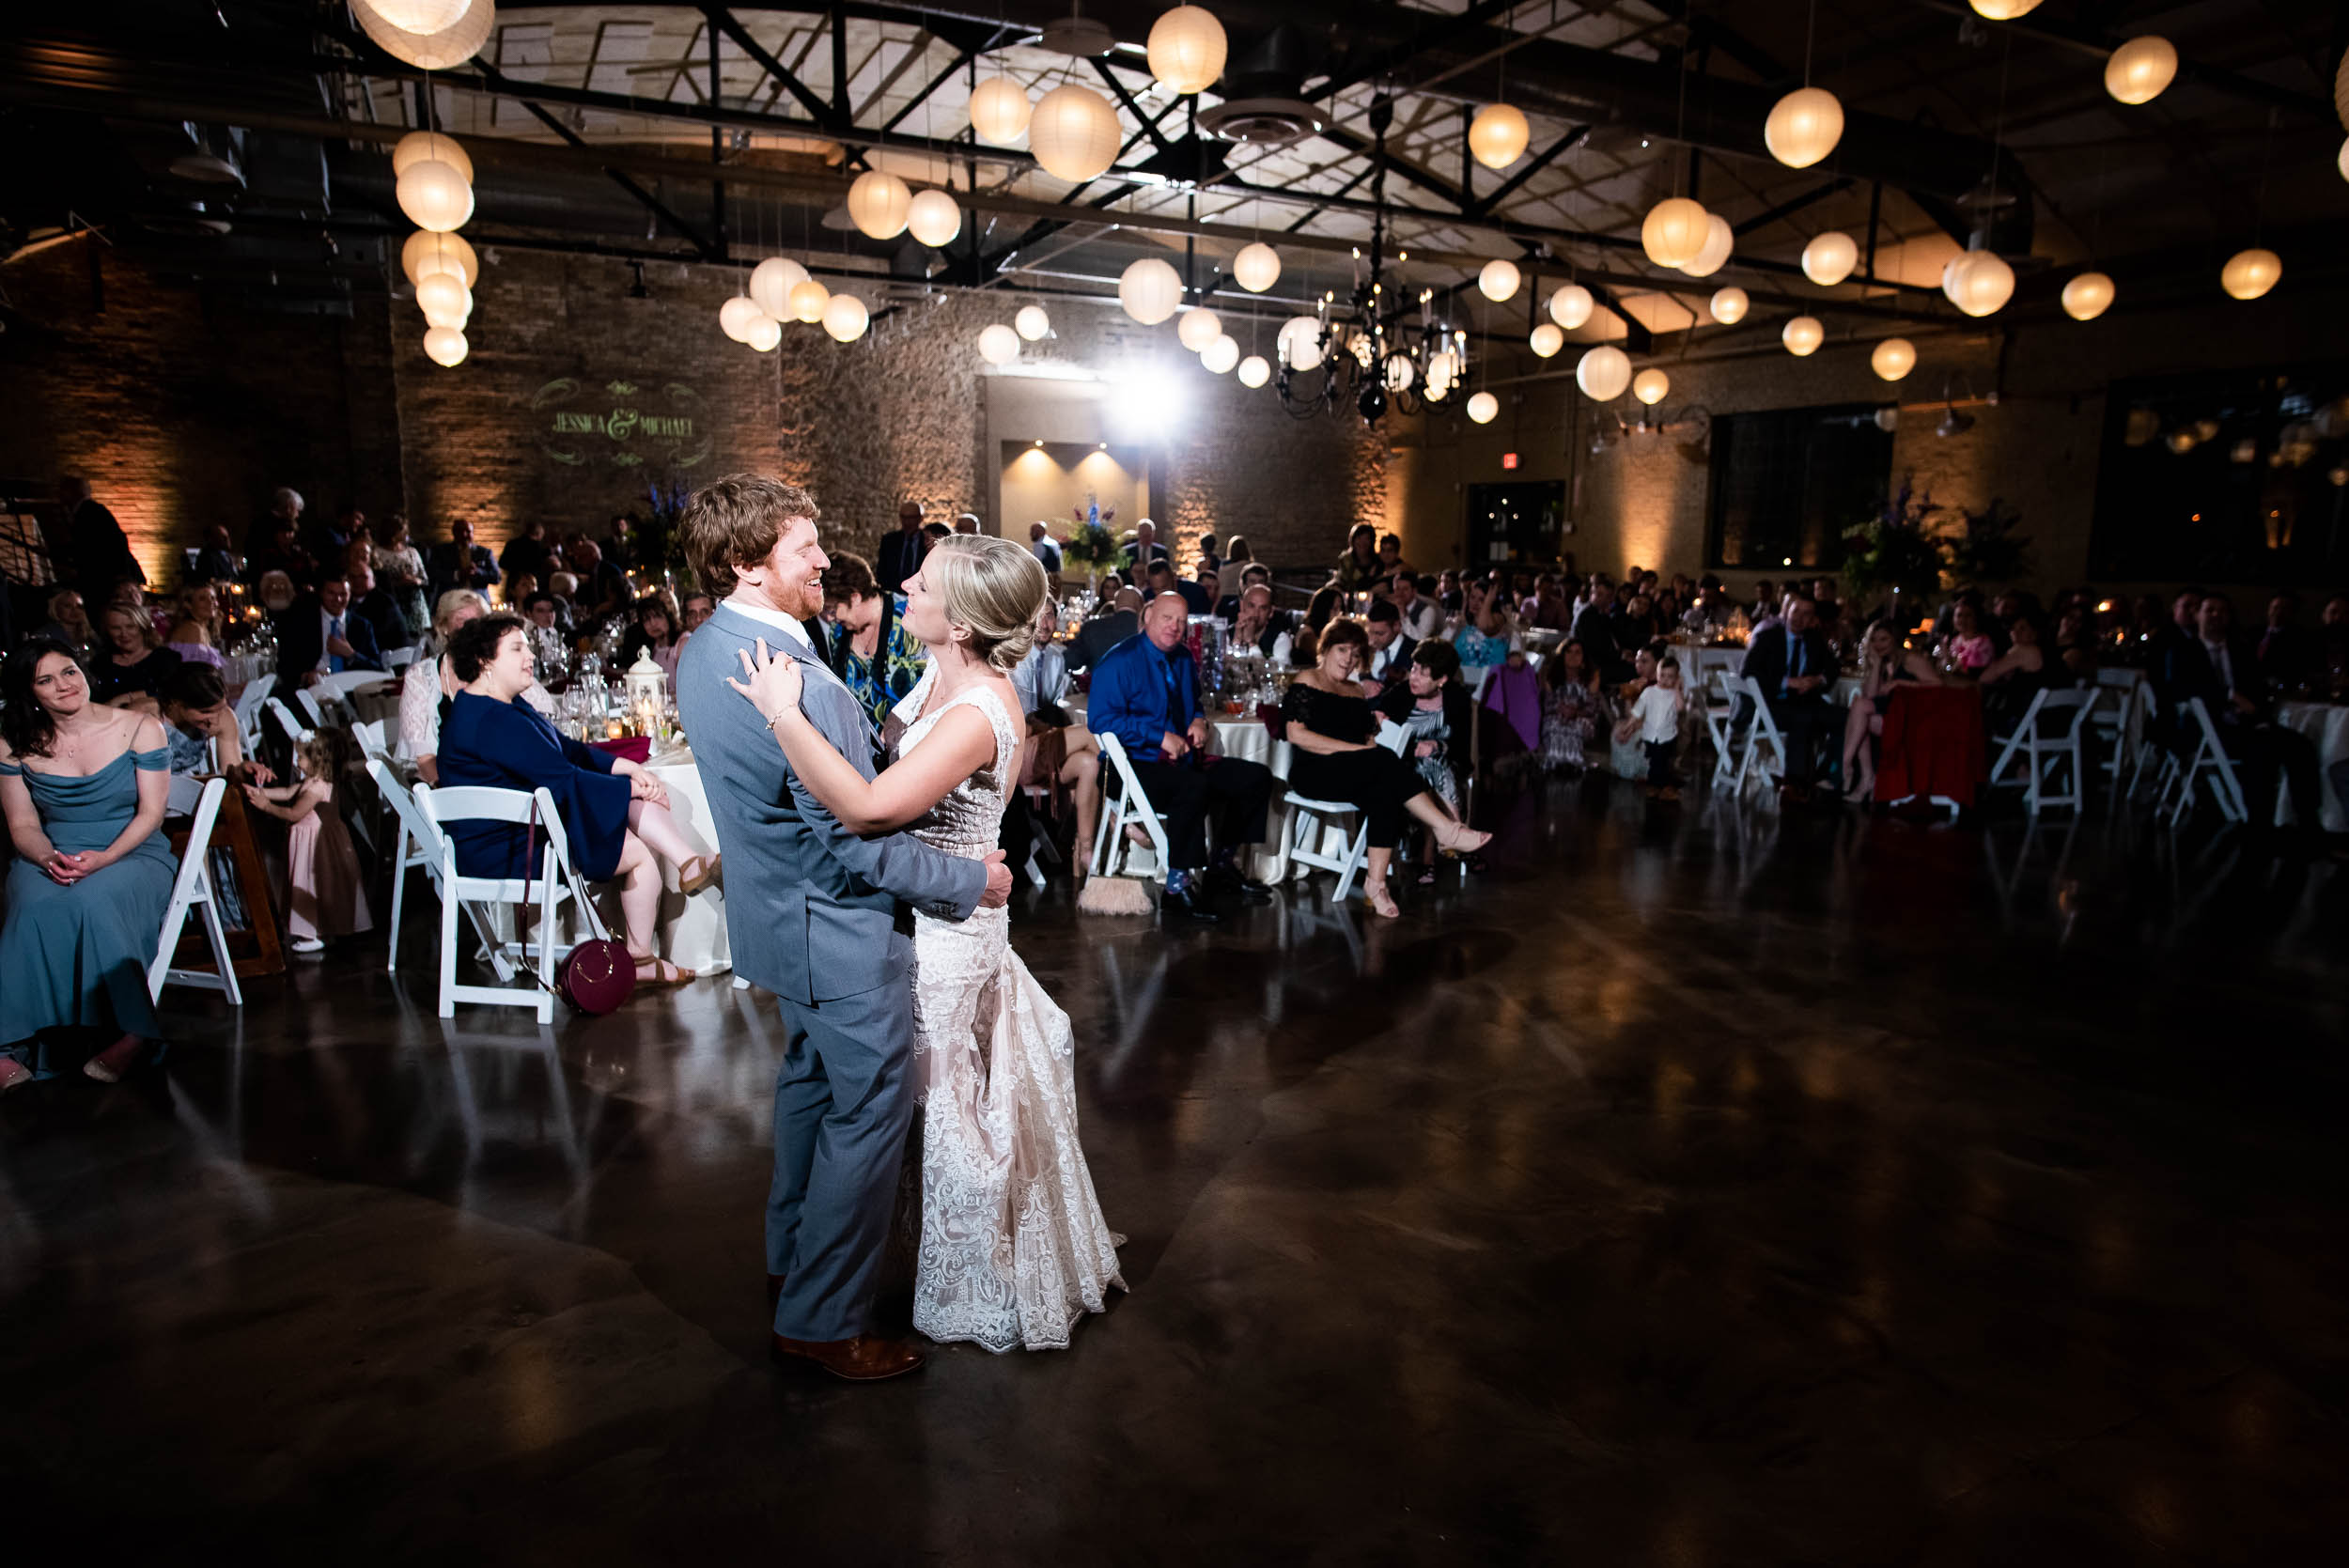 Wedding dancing: Modern industrial Chicago wedding inside Prairie Street Brewhouse captured by J. Brown Photography. Find more wedding ideas at jbrownphotography.com!